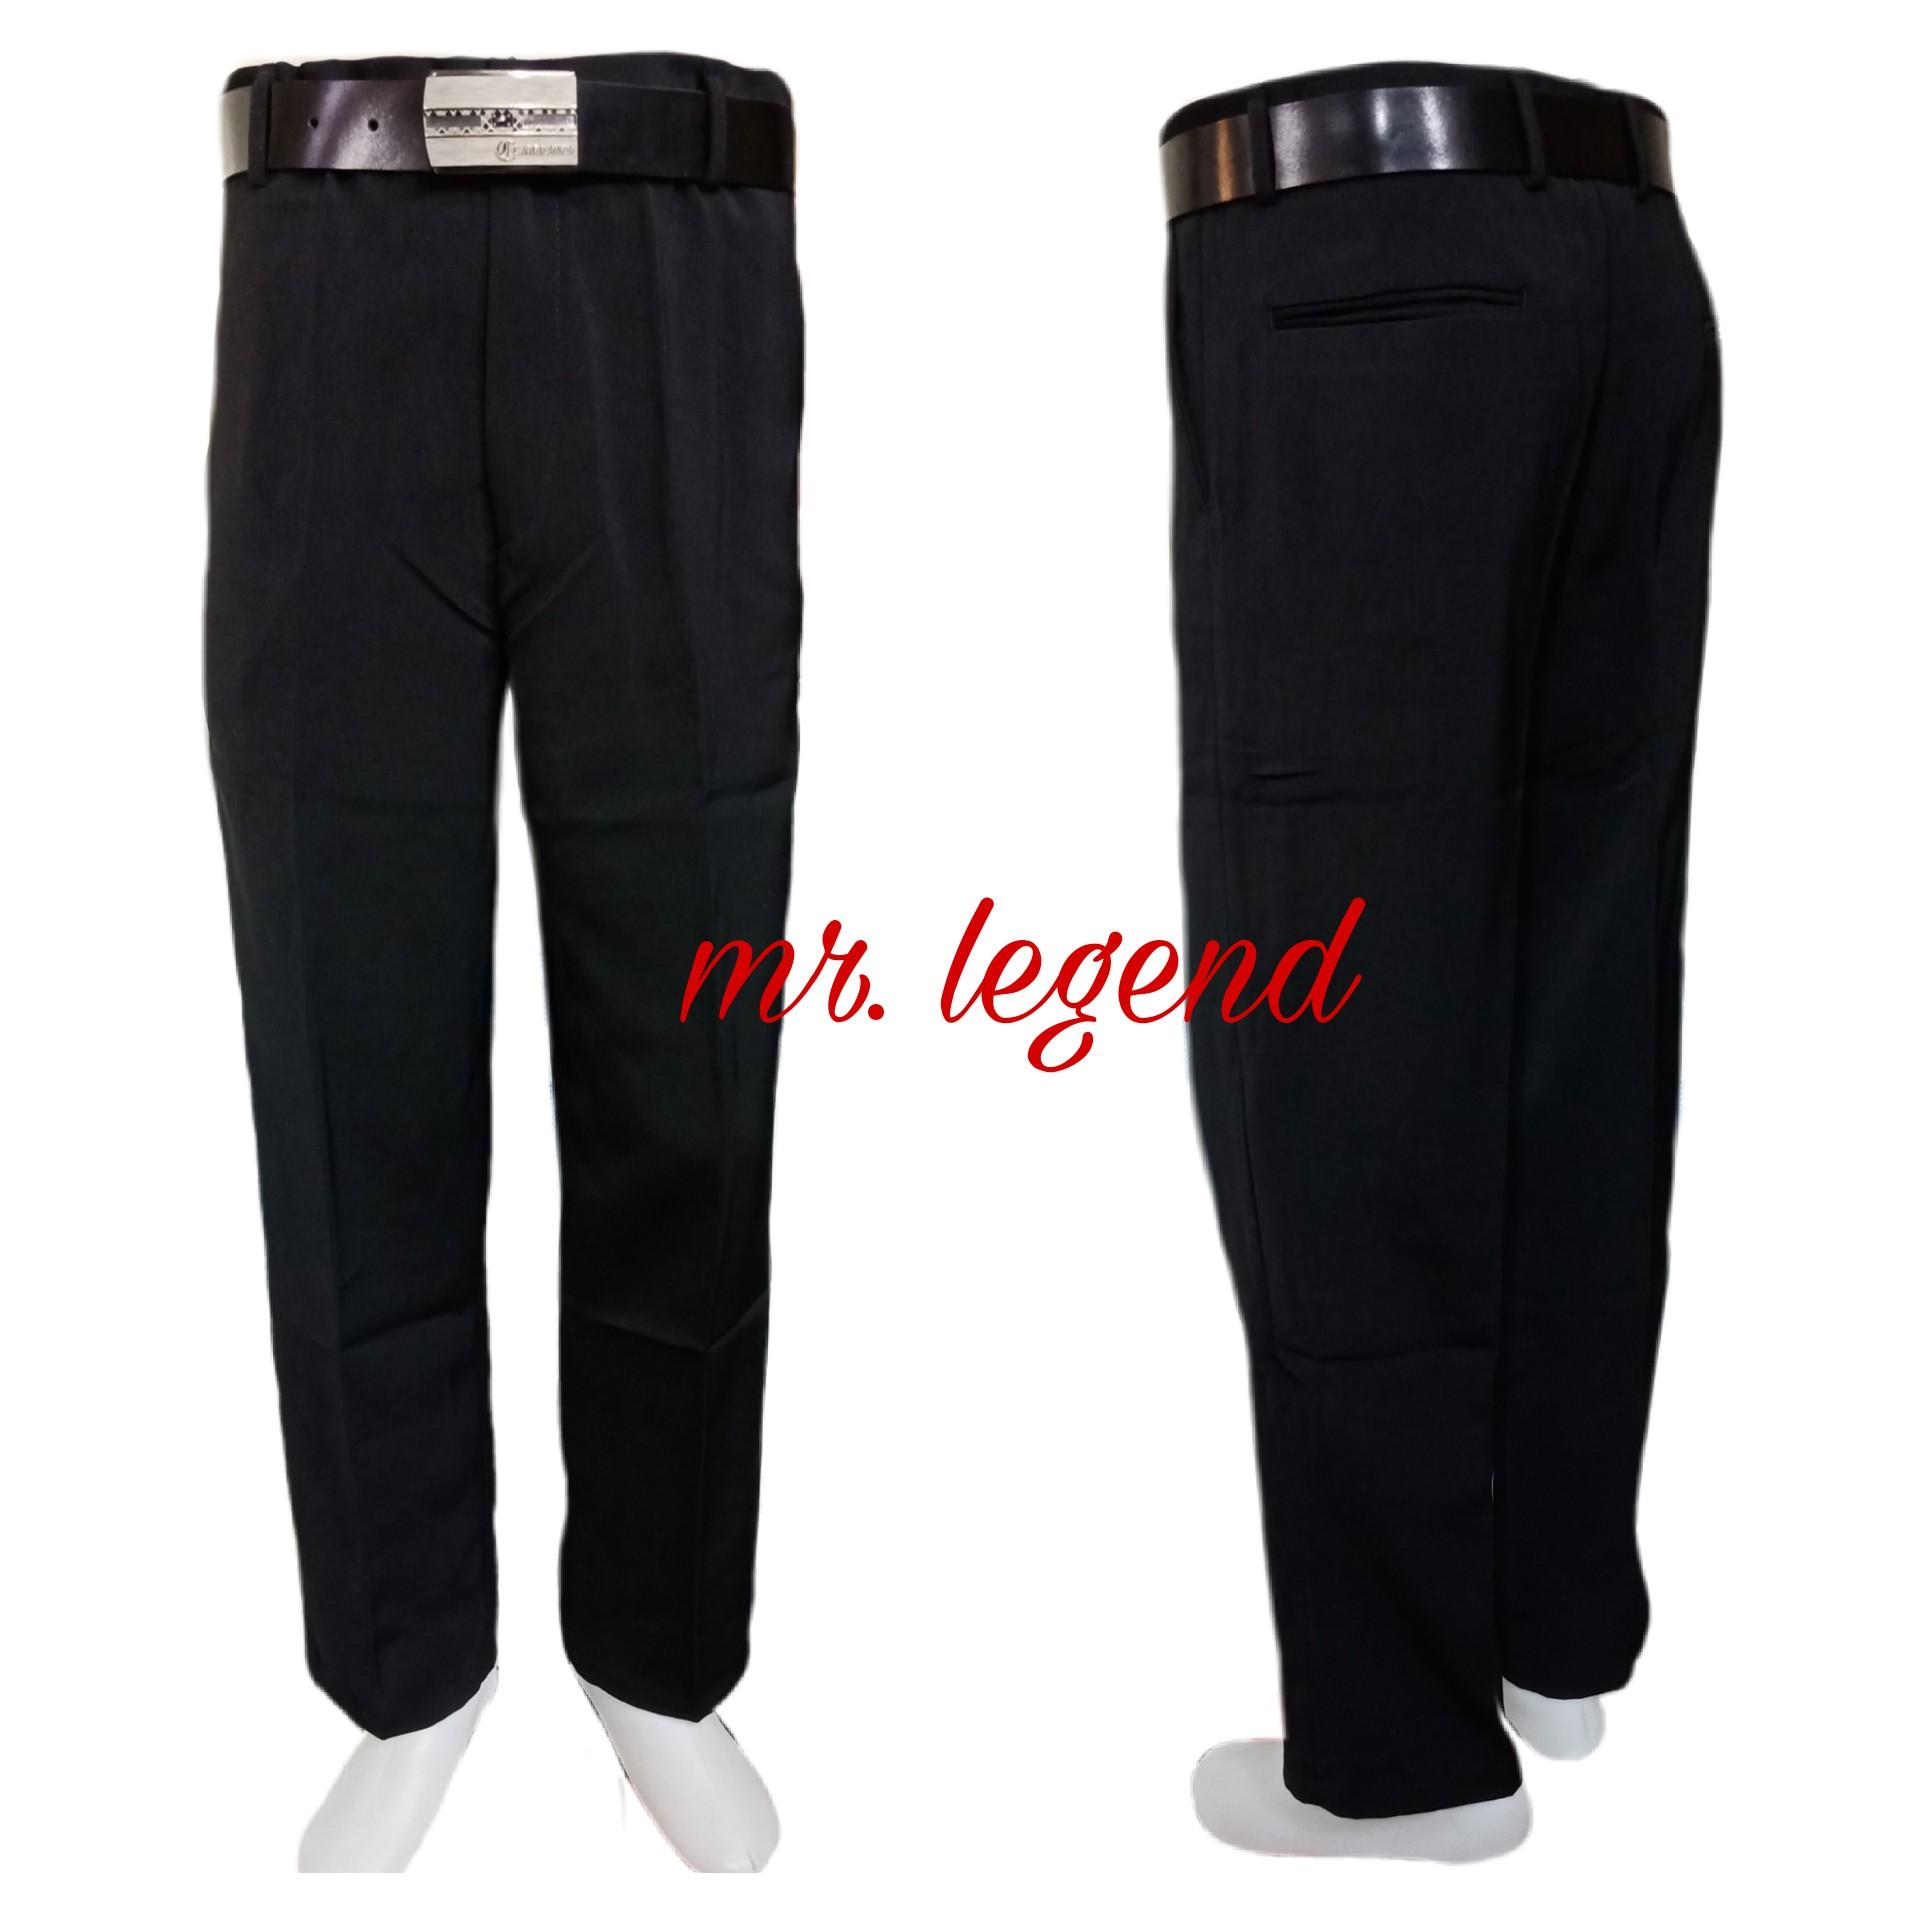 Mr.legend Celana Formal Pria Twis Regular Fit Hitam/ Celana Kerja Kantor Twist Formal Regulerfit 27/38 Hitam By Mr.legend.